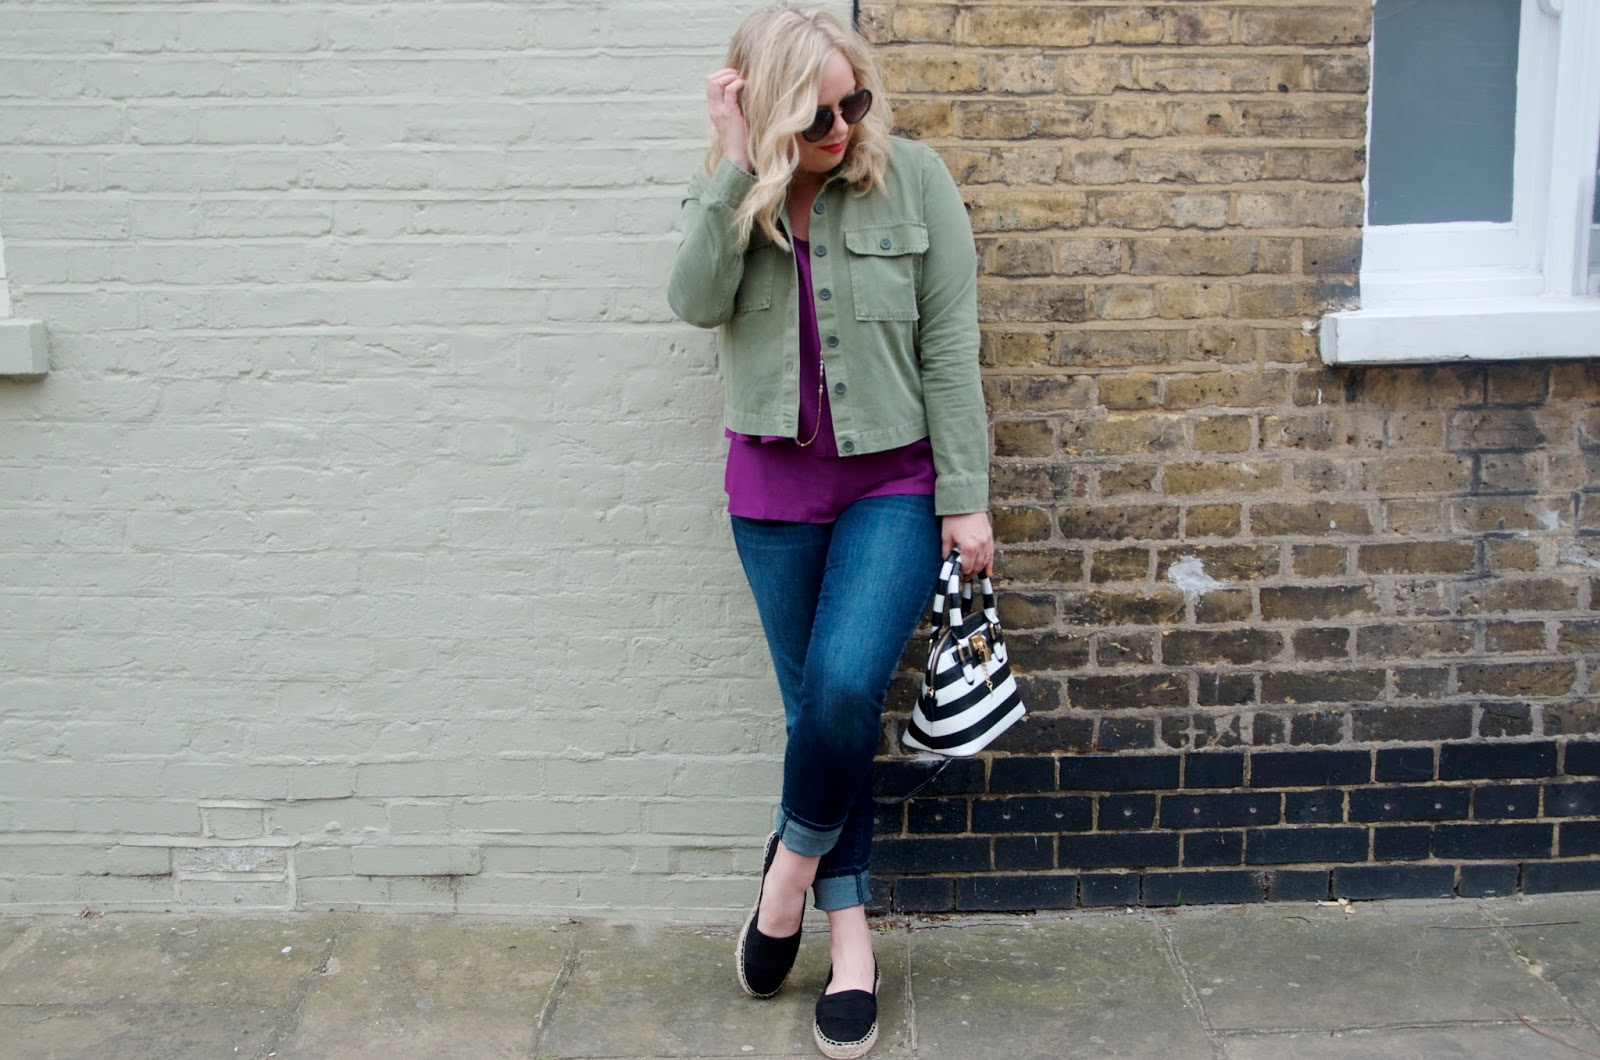 purple top, green jacket, necklace, jeans, striped bag, black shoes and sunglasses